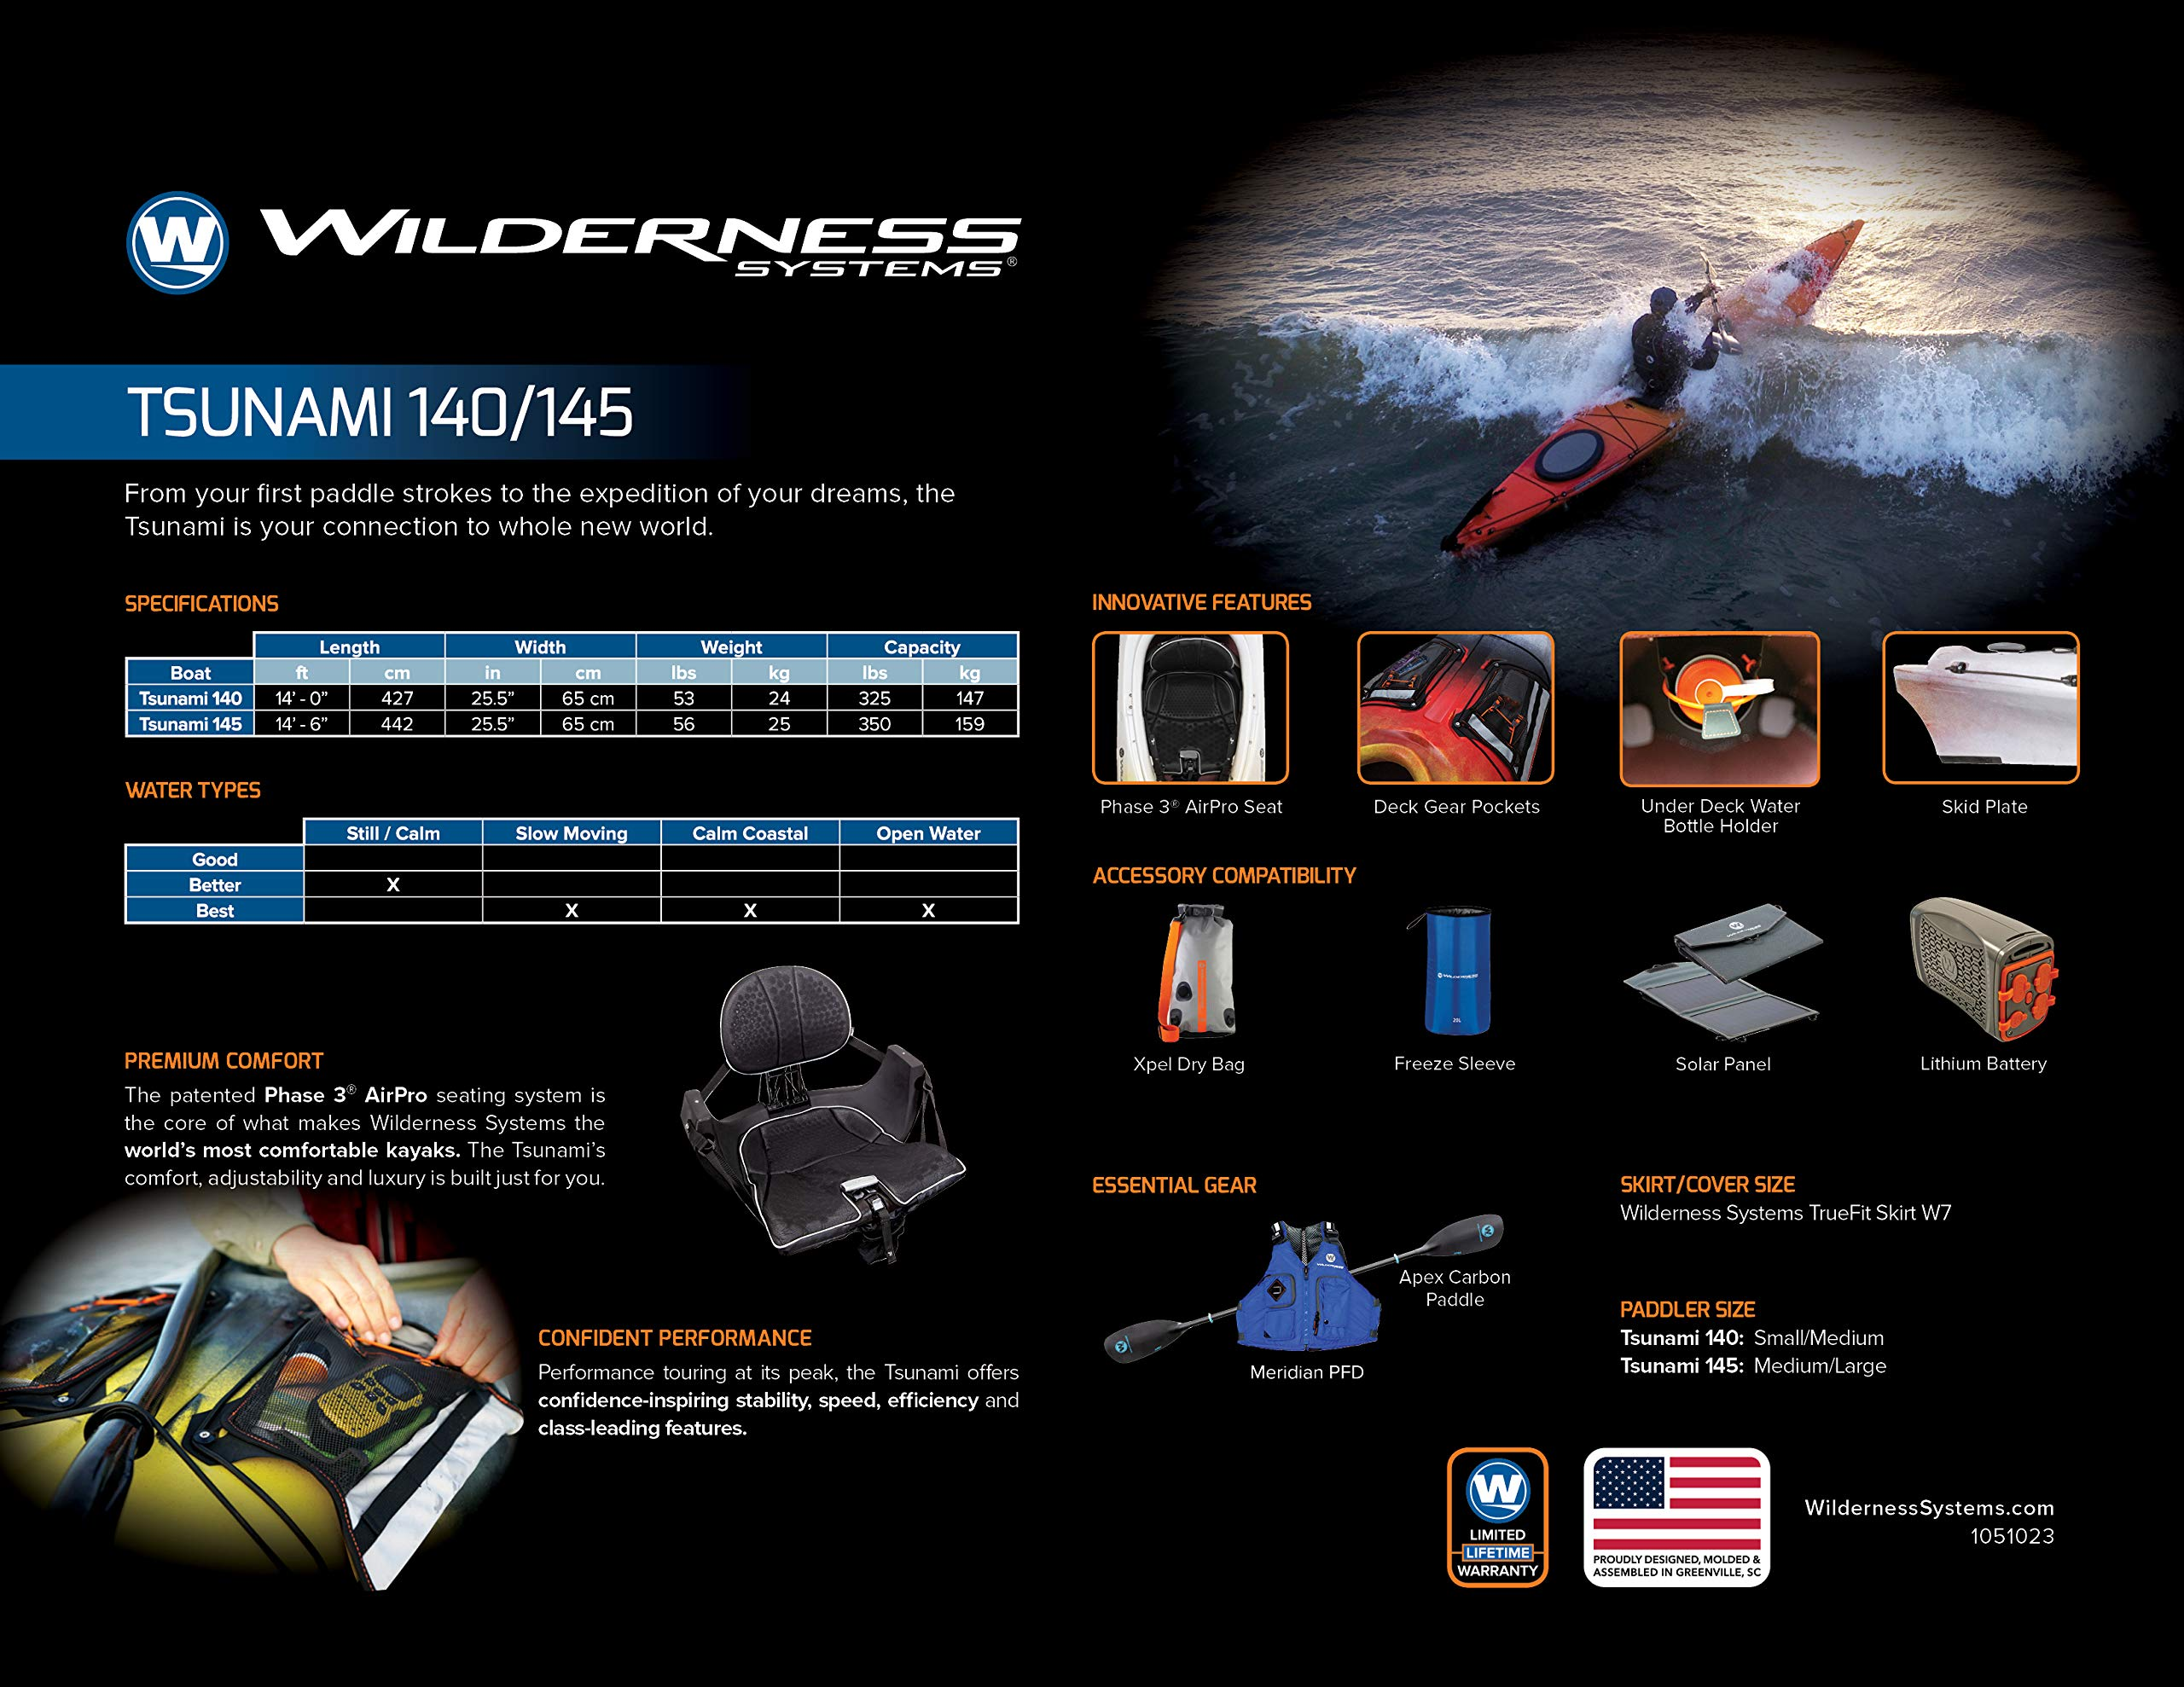 Wilderness Systems 9720408163 Tsunami 140 Kayaks, Borealis, 14' by Wilderness Systems